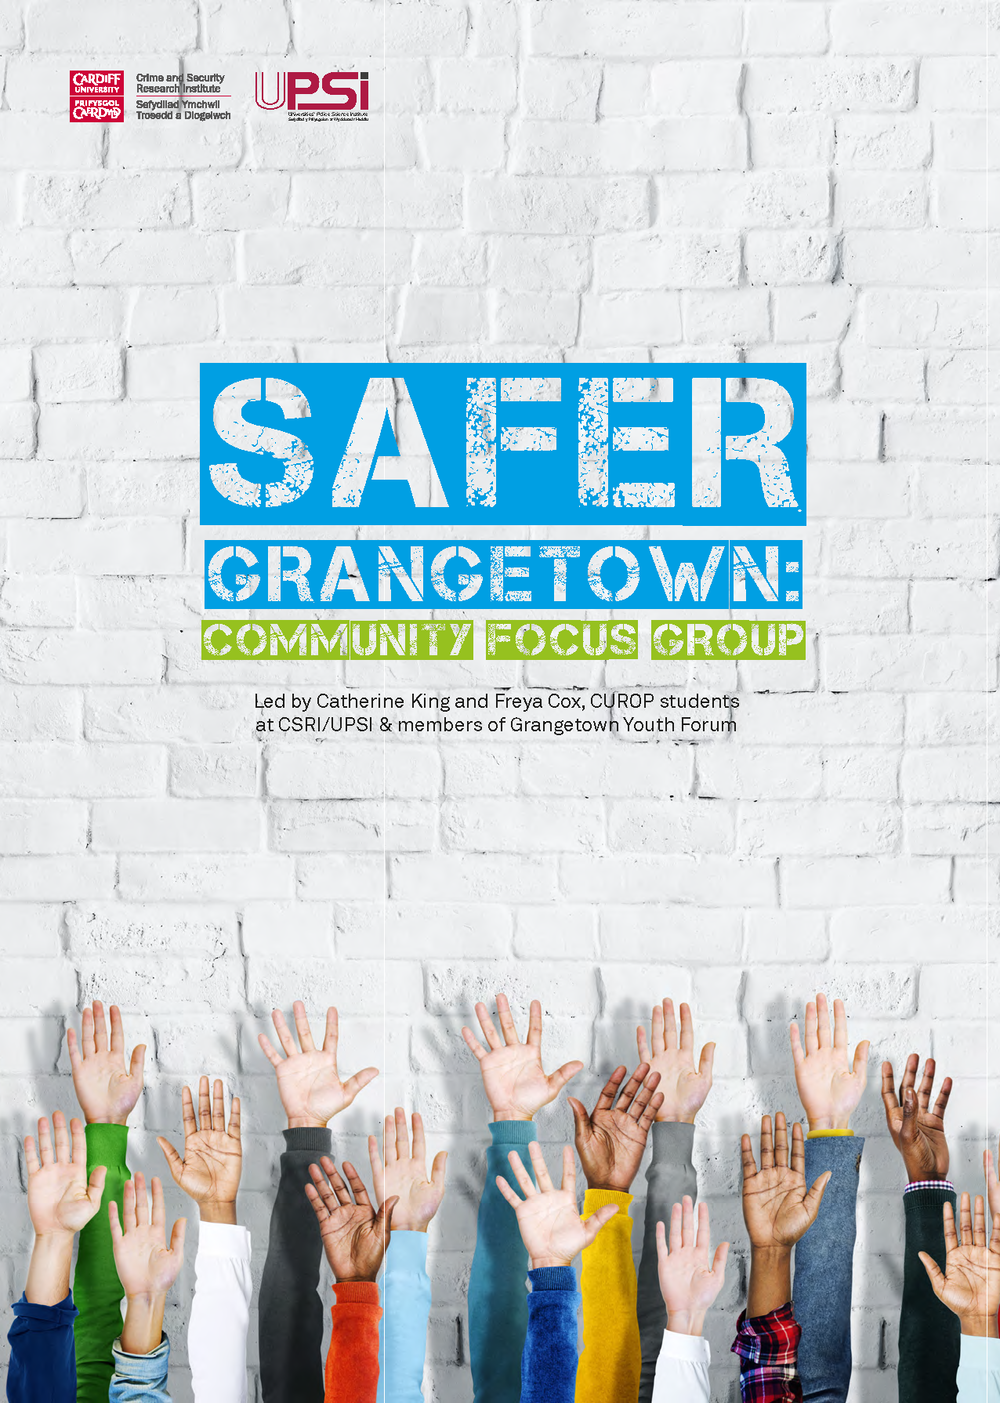 Safer Grangetown: Community Focus Group Led by CSRI/UPSI CUROP Students & Grangetown Youth Forum -